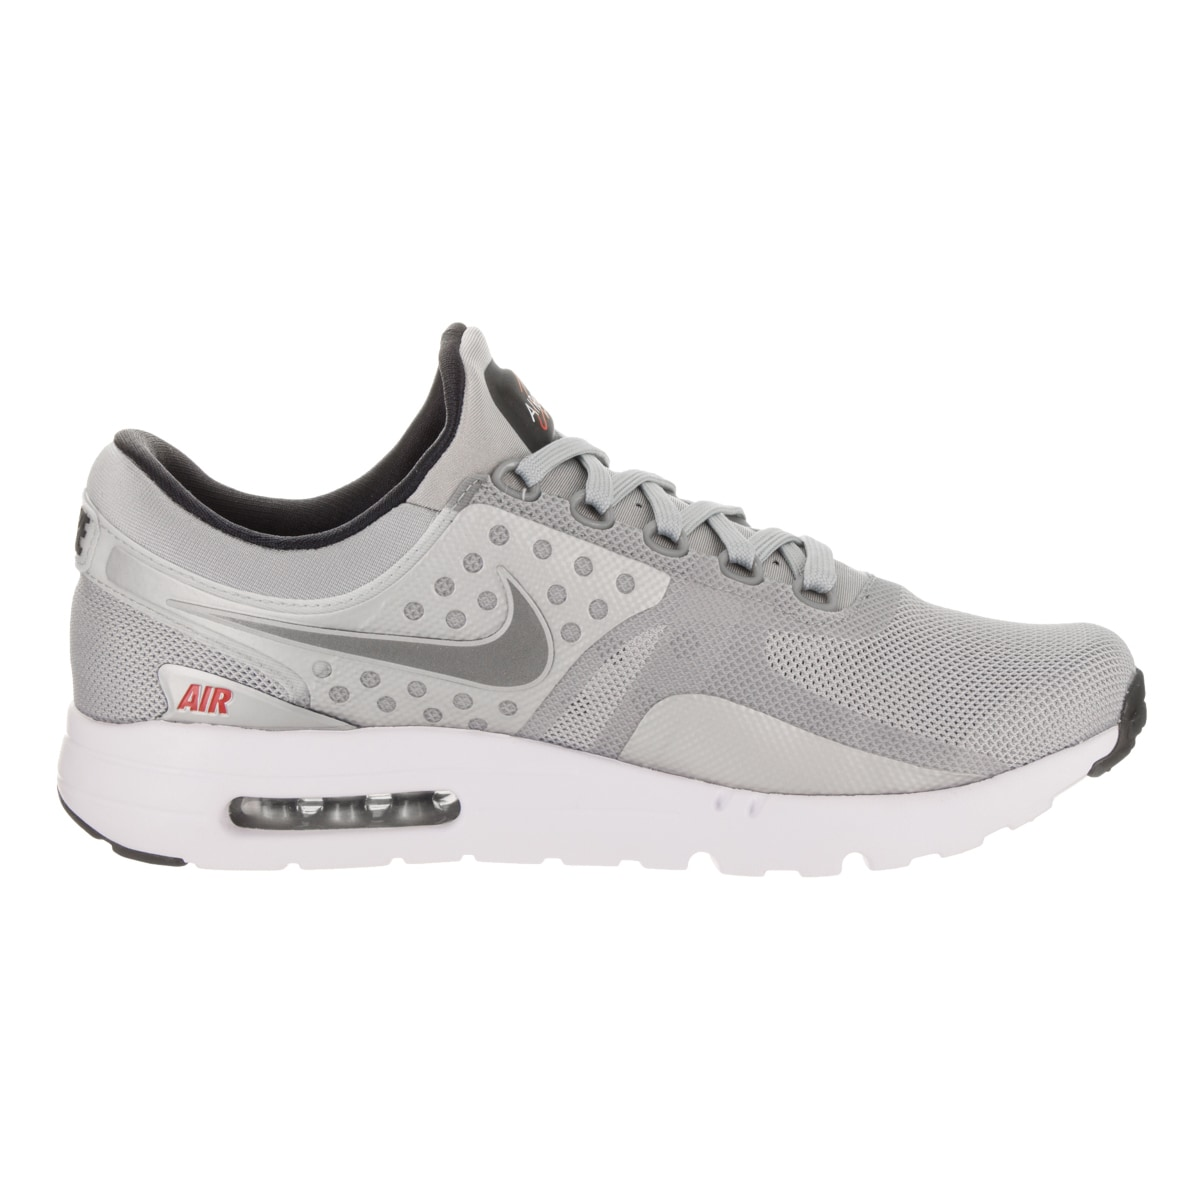 02d1bd2f596d Shop Nike Men s Air Max Zero QS Running Shoe - Free Shipping Today -  Overstock.com - 22703239